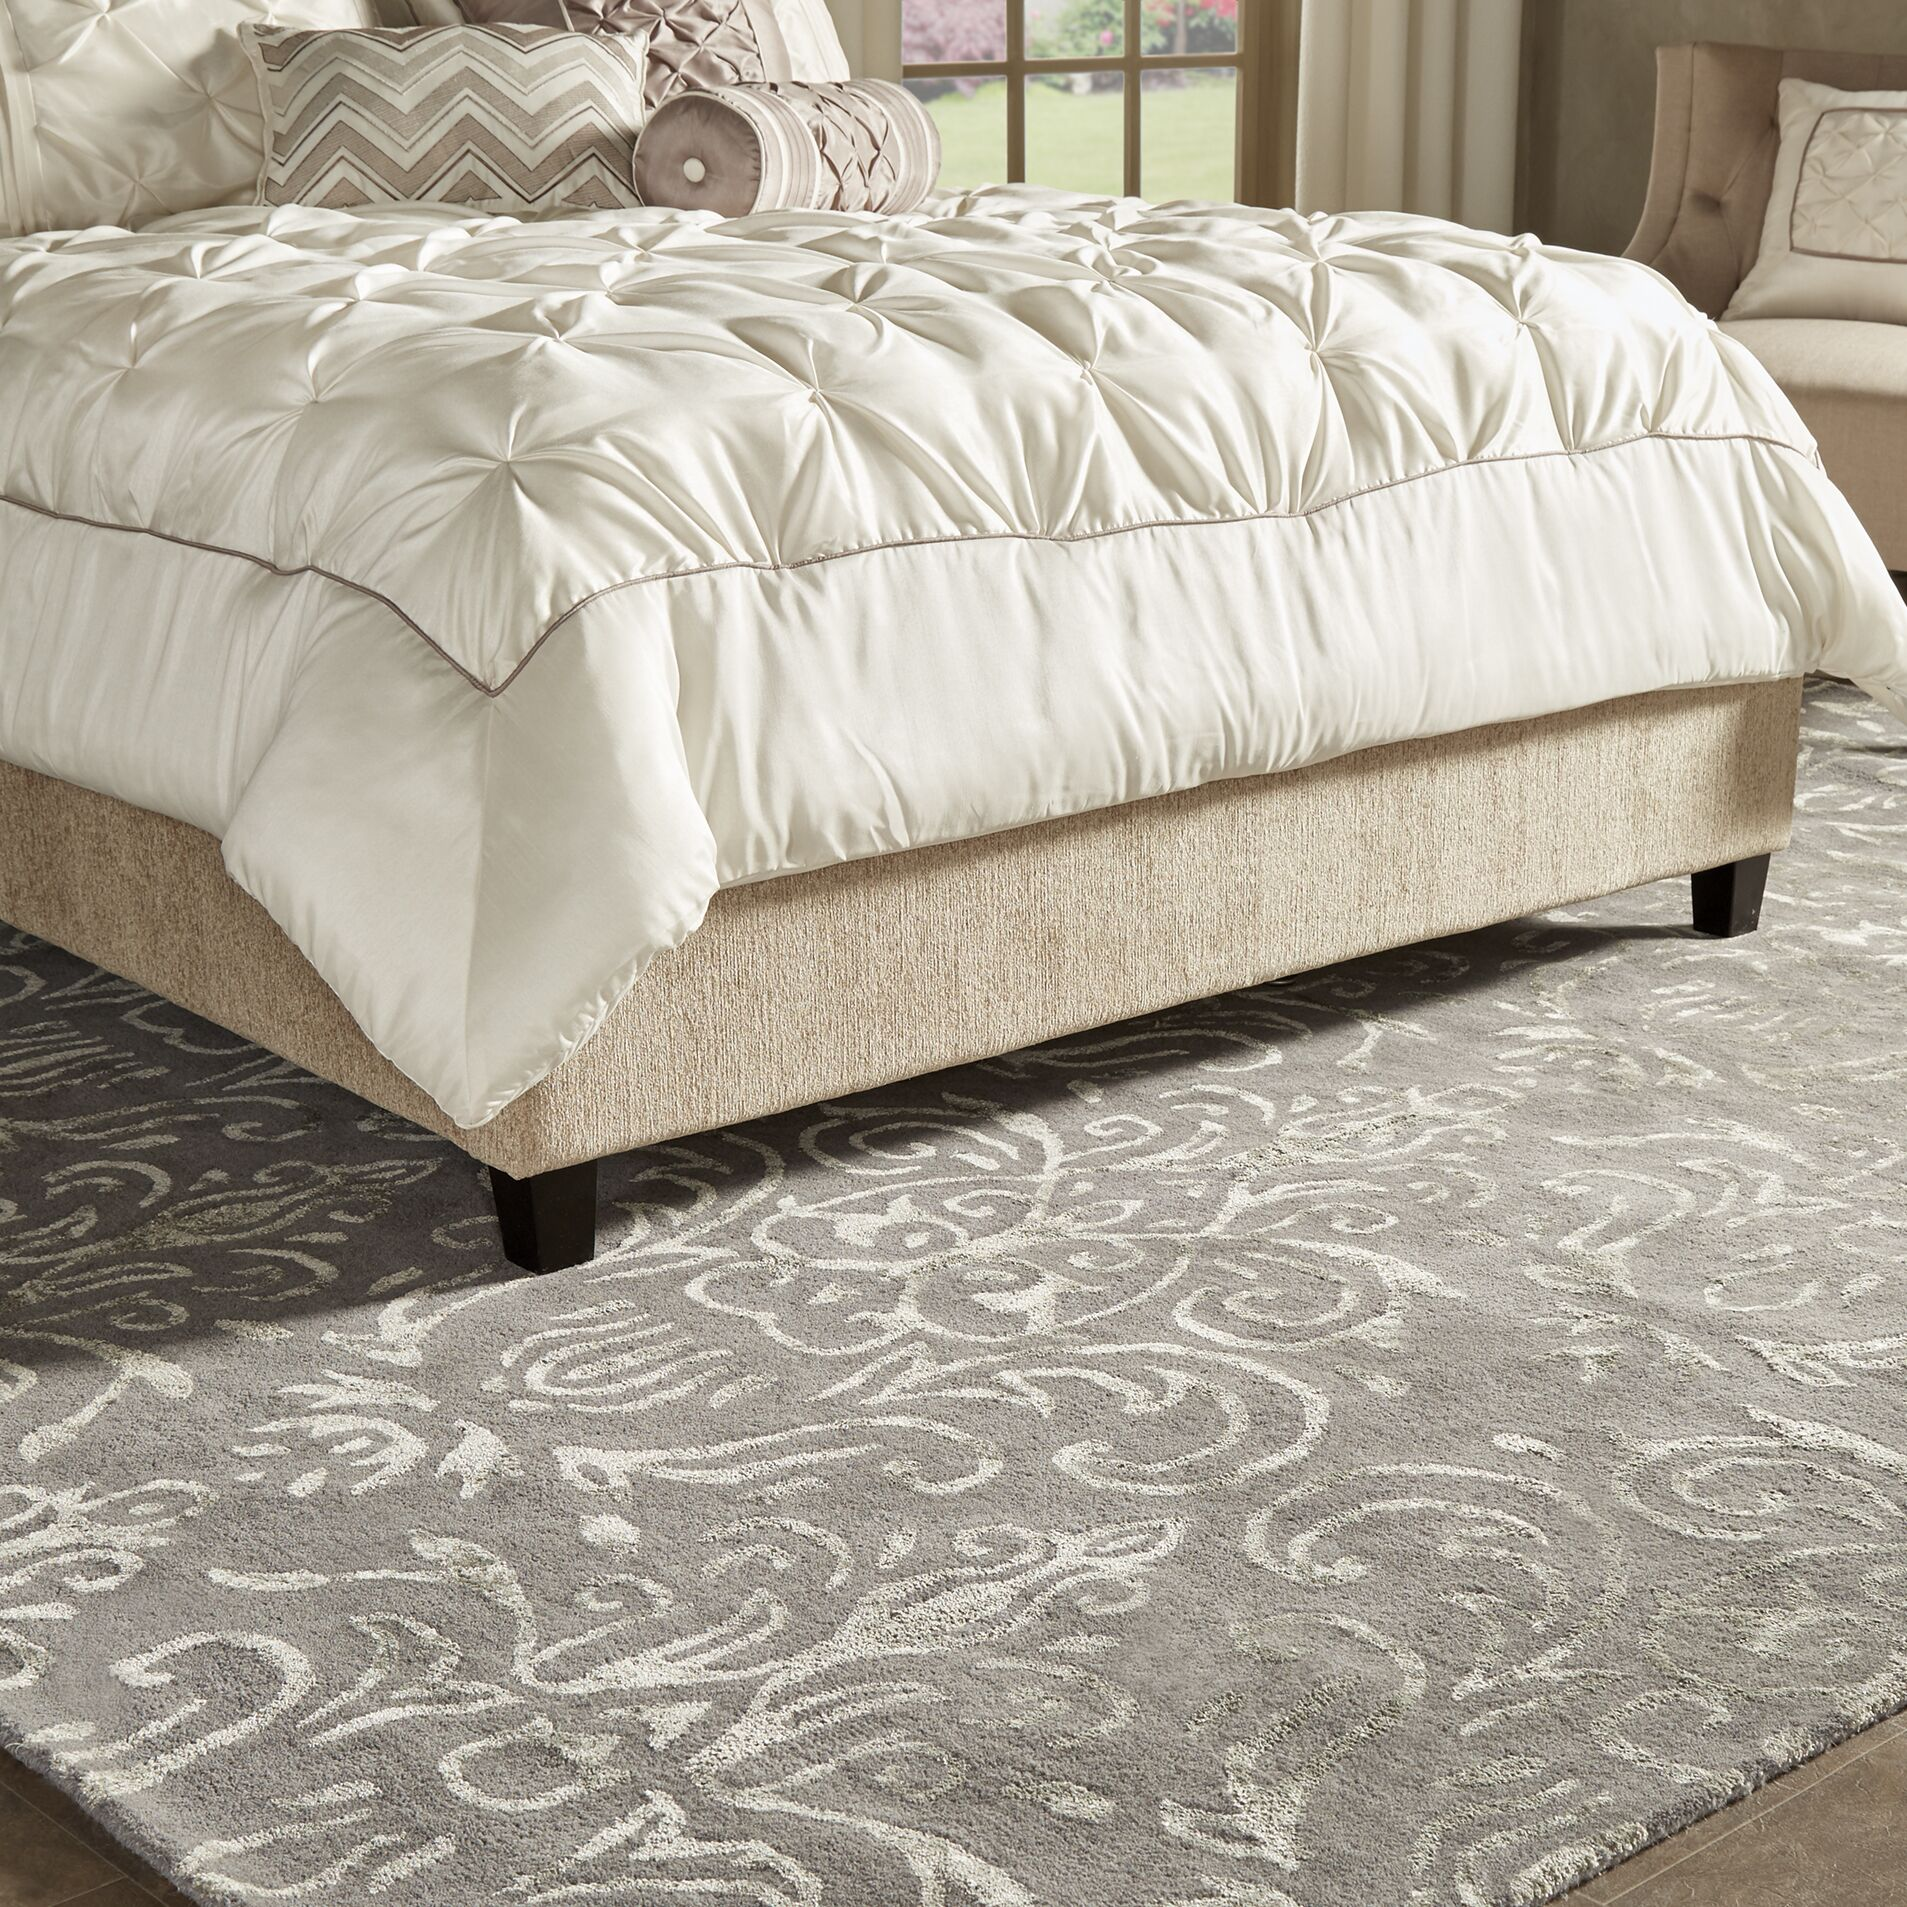 Brandt Hand-Tufted Gray Area Rug Rug Size: Rectangle 5' x 8'